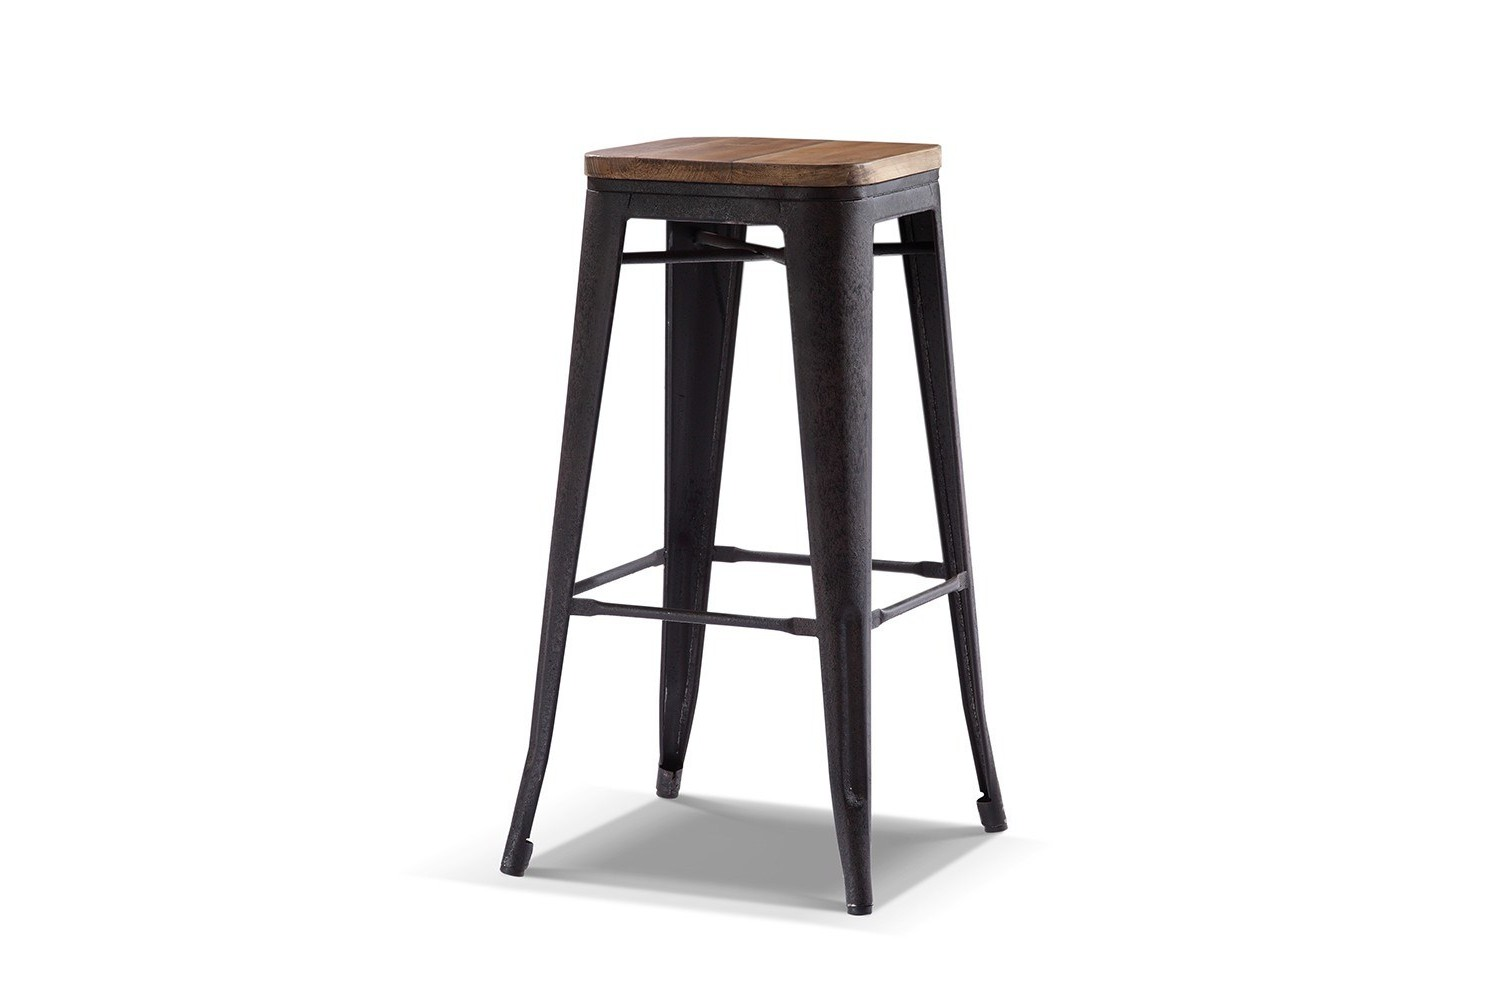 tabouret de bar avec dossier tabouret de bar avec dossier. Black Bedroom Furniture Sets. Home Design Ideas